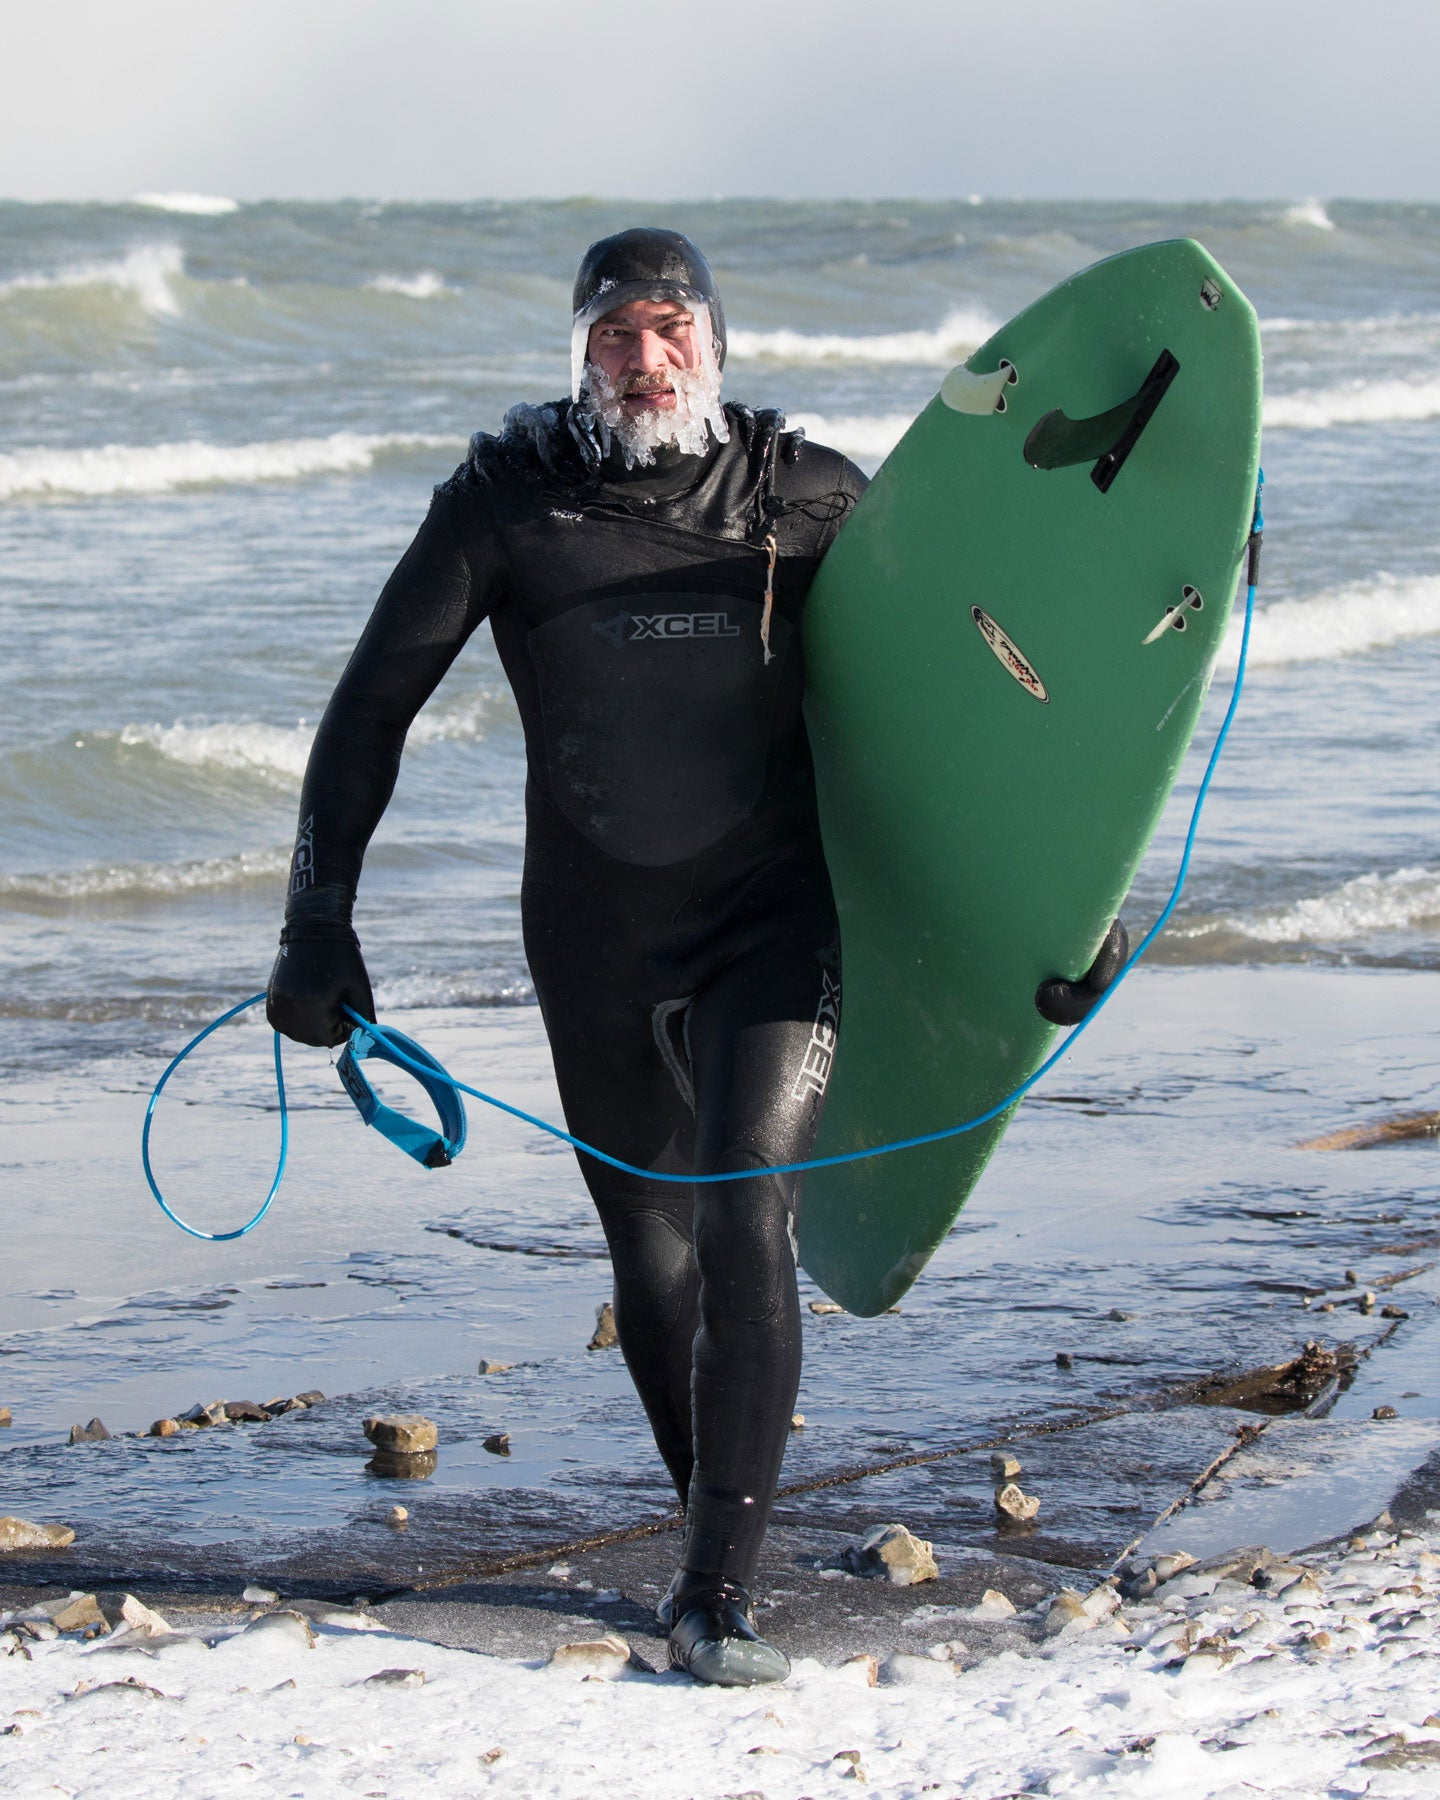 Lucas Murnaghan Surf the Greats Great Lake Surfing Georgian Bay Collingwood Canada Ontario Ice Beard